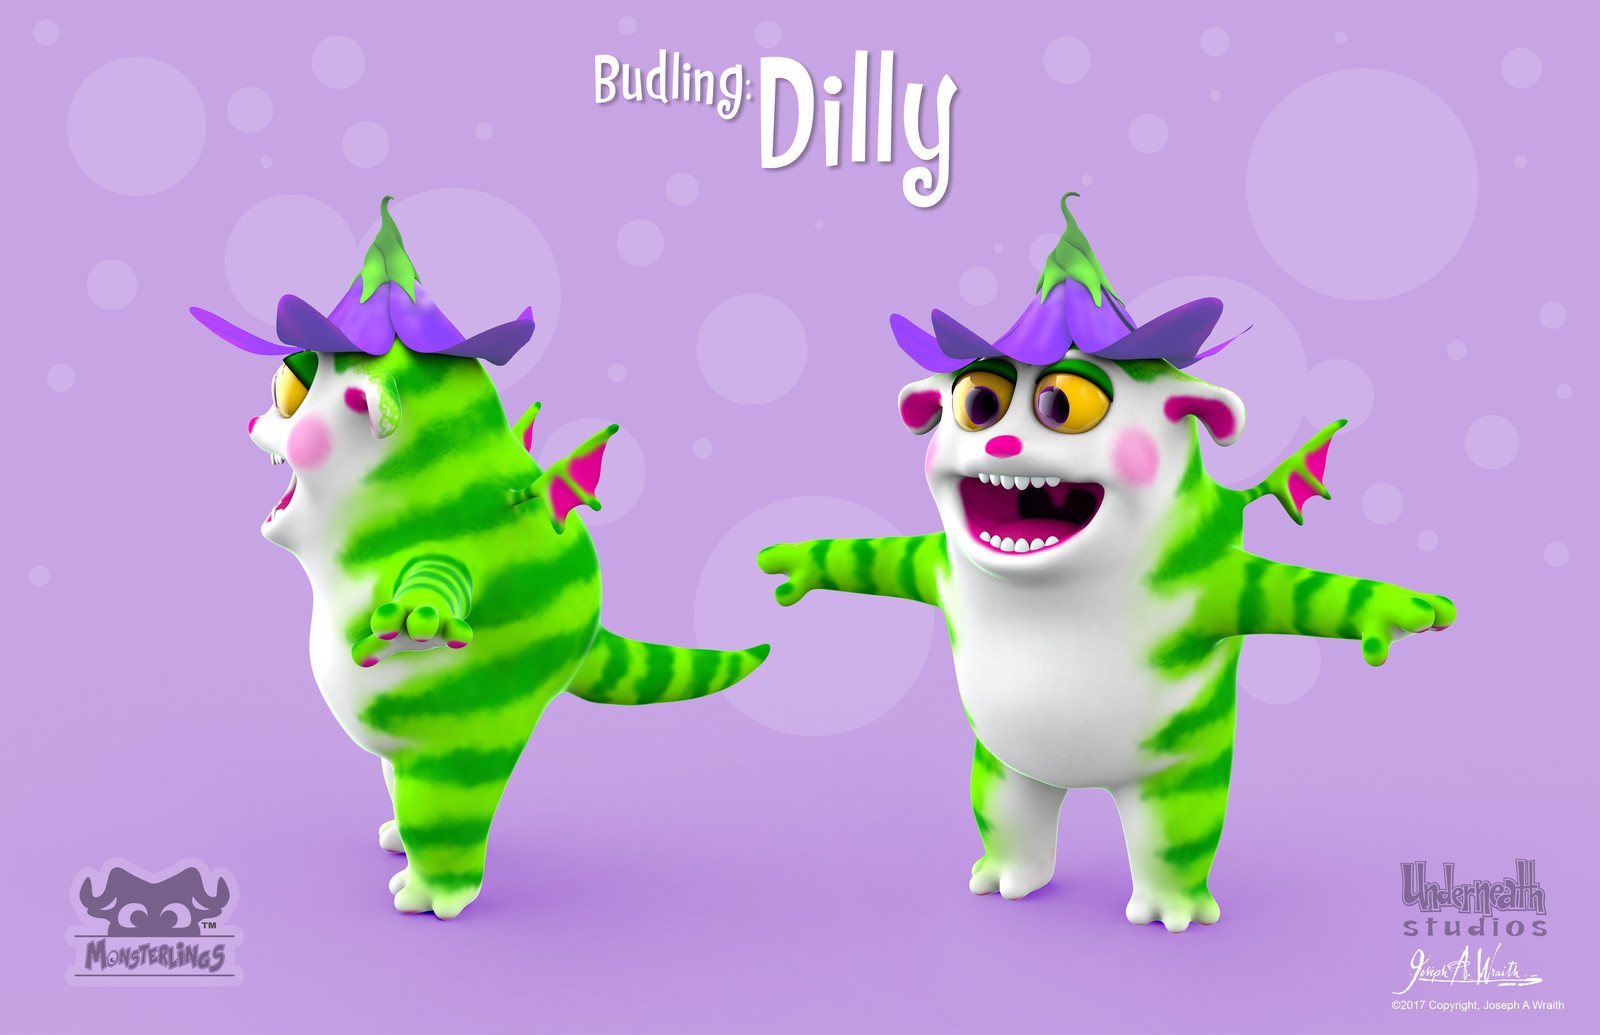 Monsterlings: Budling - Dilly